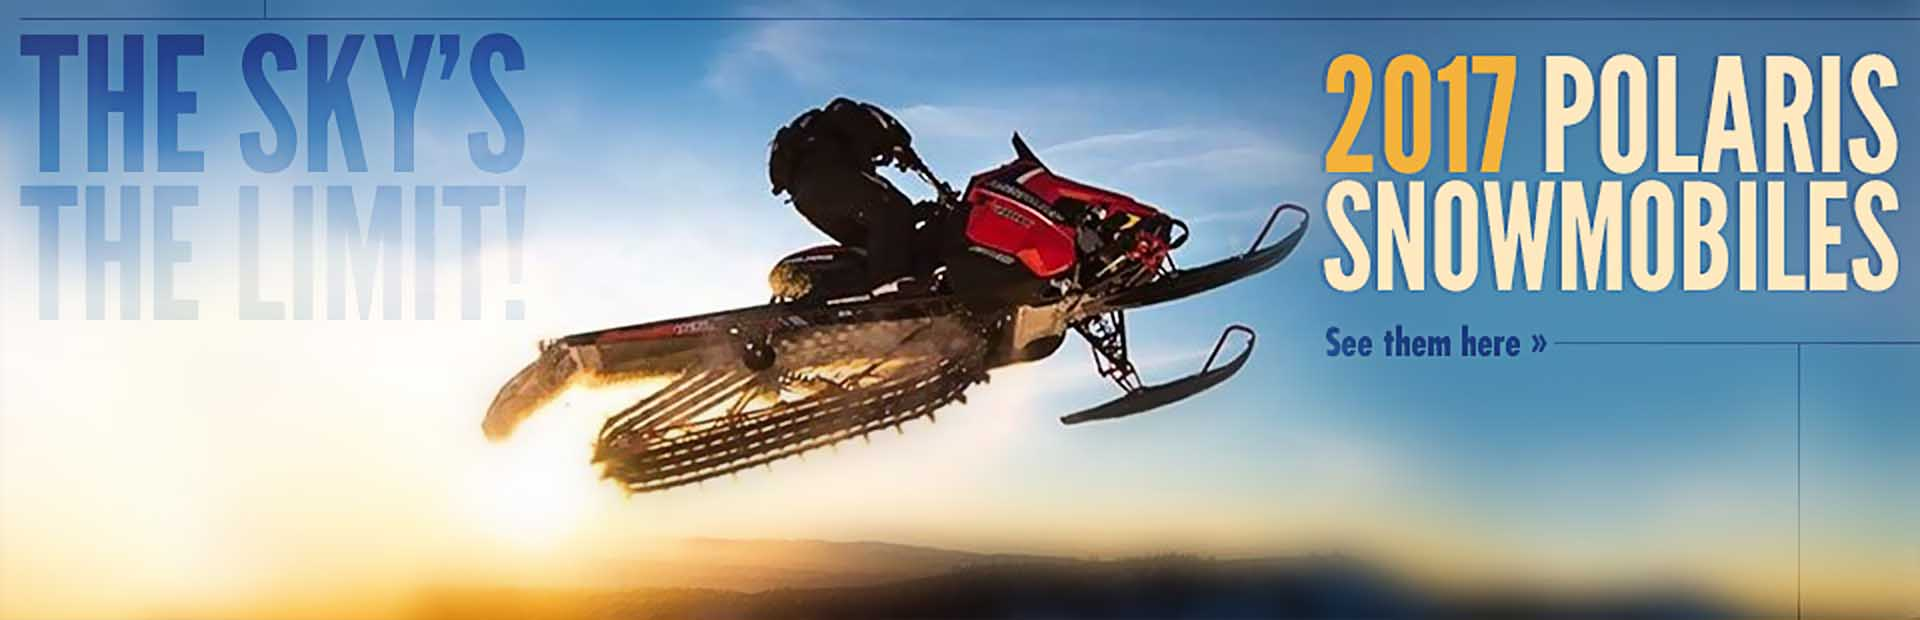 2017 Polaris Snowmobiles: Click here to view our showcase!